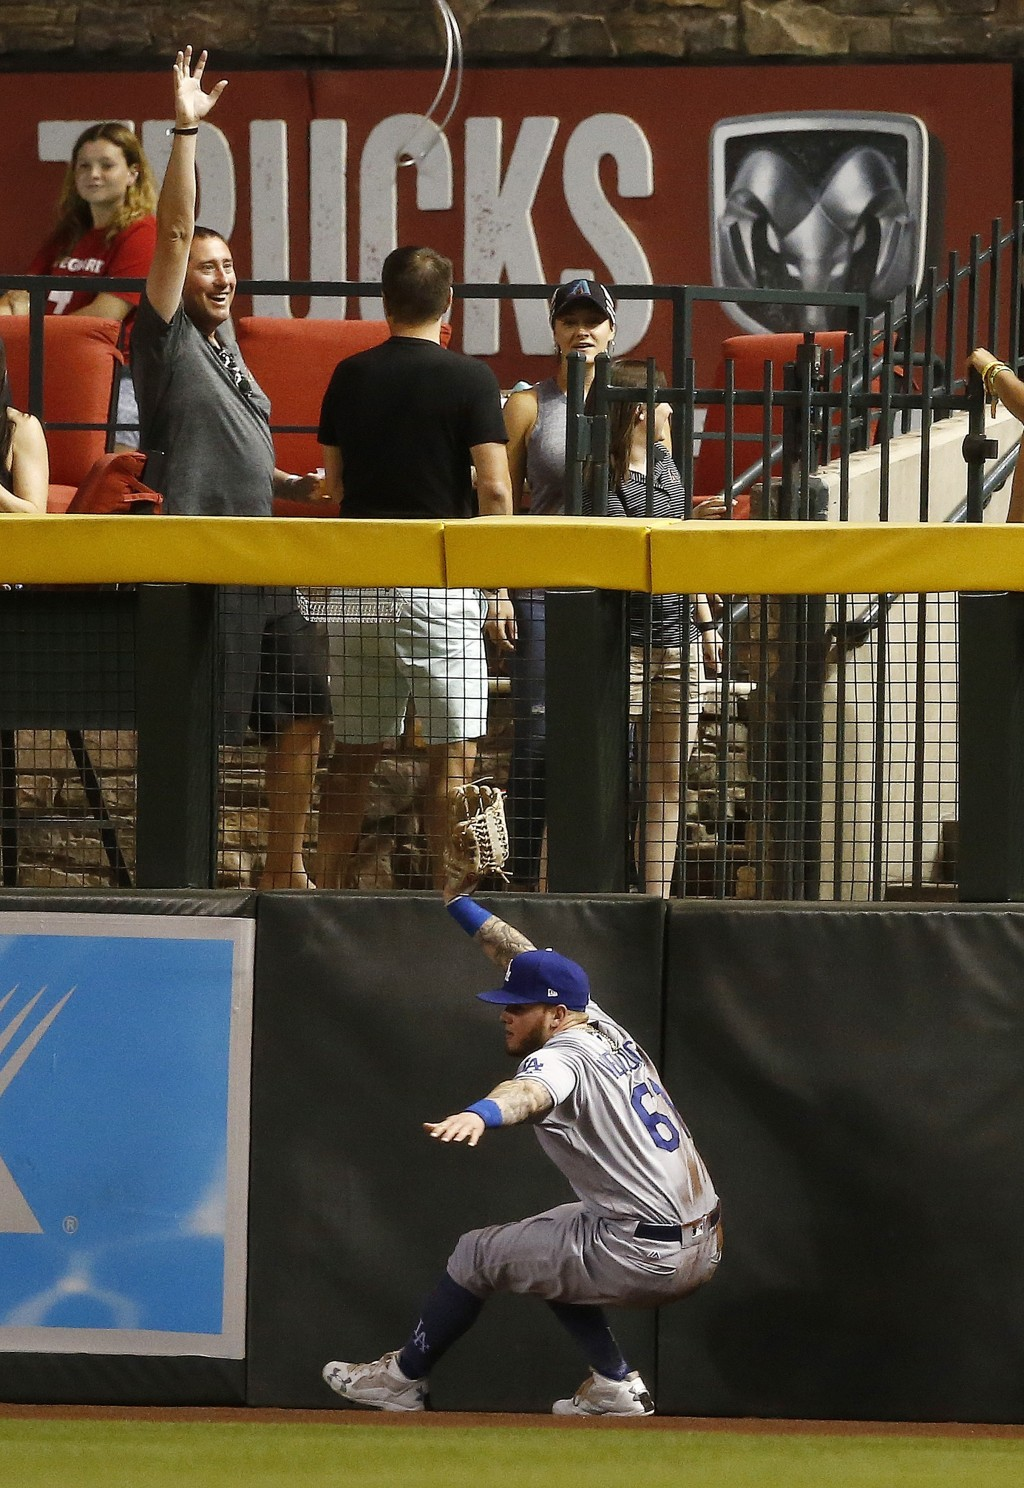 Los Angeles Dodgers right fielder Alex Verdugo is unable to make a catch on a ground rule double hit by Arizona Diamondbacks' Zack Greinke during the ...